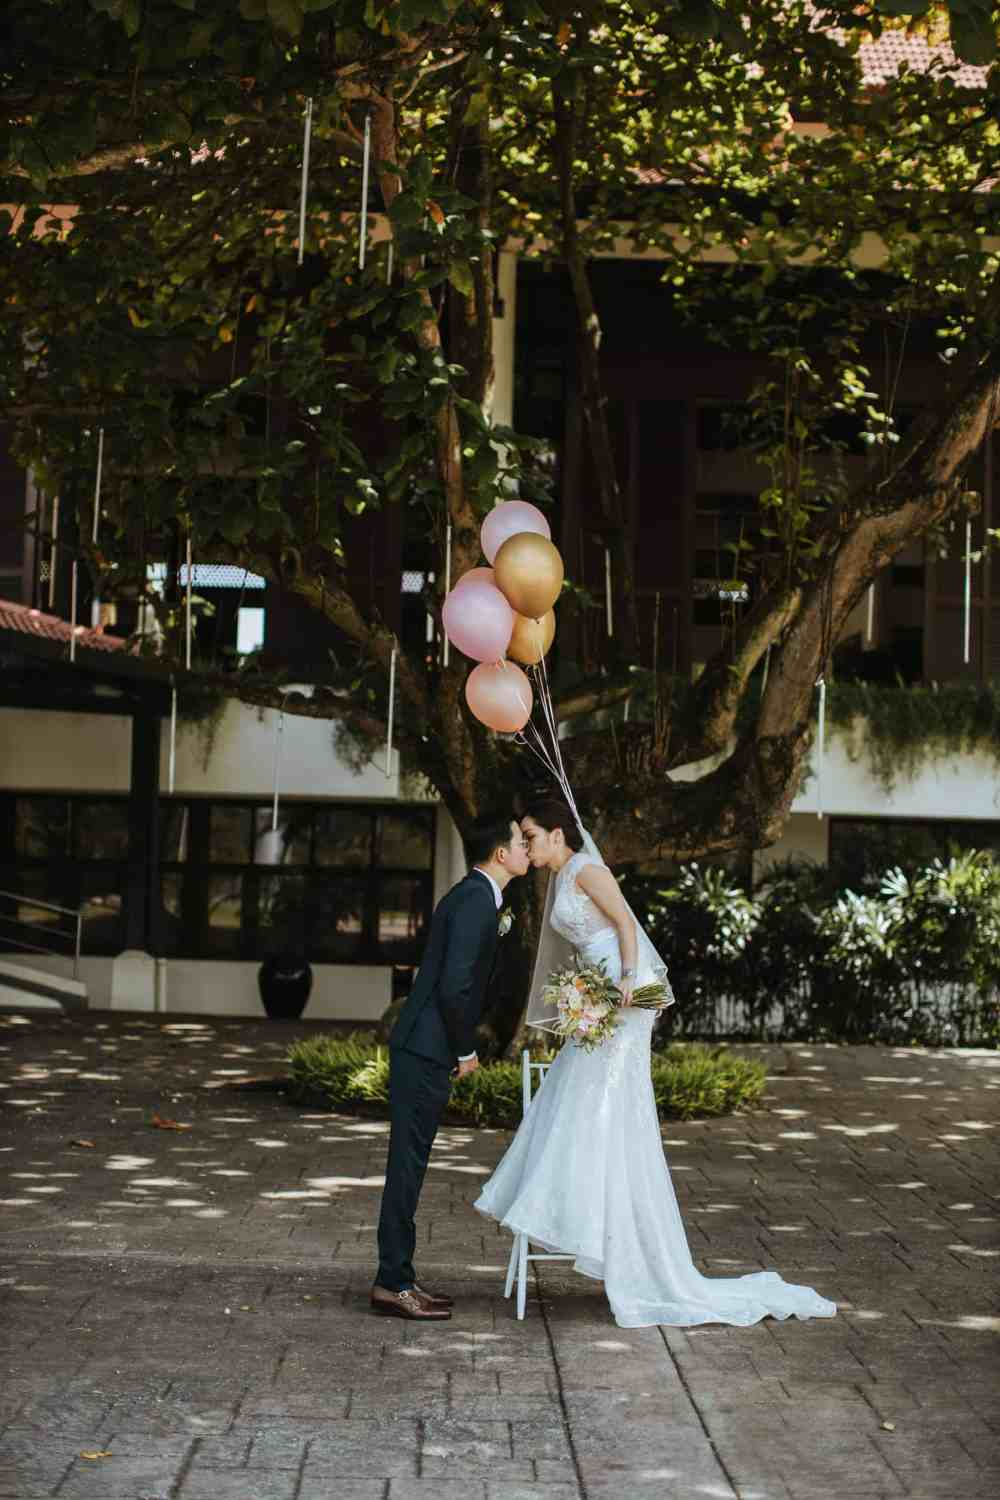 Garden Romantic Rustic Rosy Golden Wedding at The Saujana Hotel Subang Kuala Lumpur malaysia cliff choong the cross effects kevin tan destination portrait and wedding photographer malaysia kuala lumpur bride and groom couple kiss romantic intimate moment scene exchanging Rings